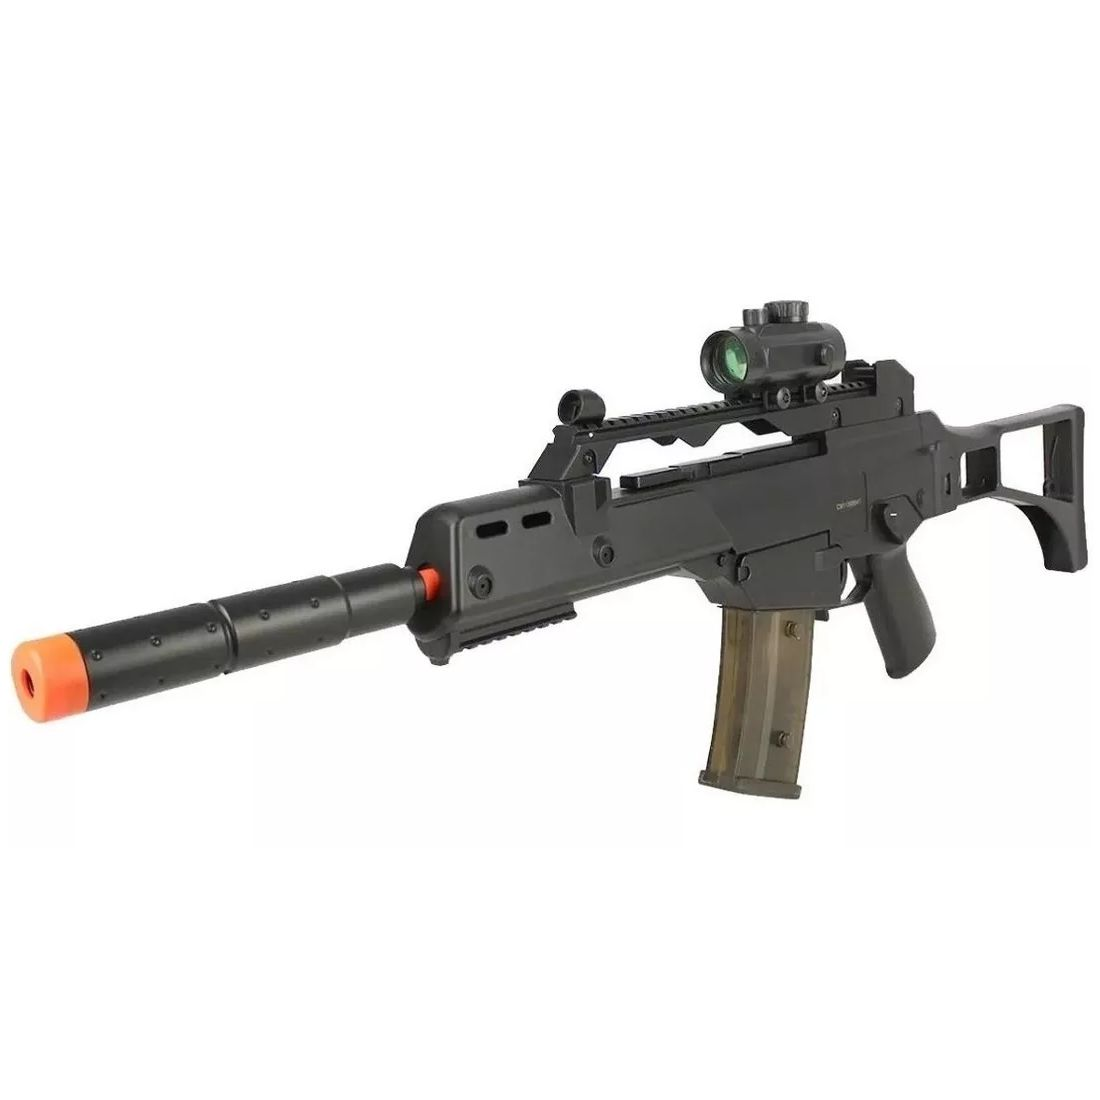 RIFLE AIRSOFT ROSSI ELÉTRICA CYMA G36 CM021 6 MM